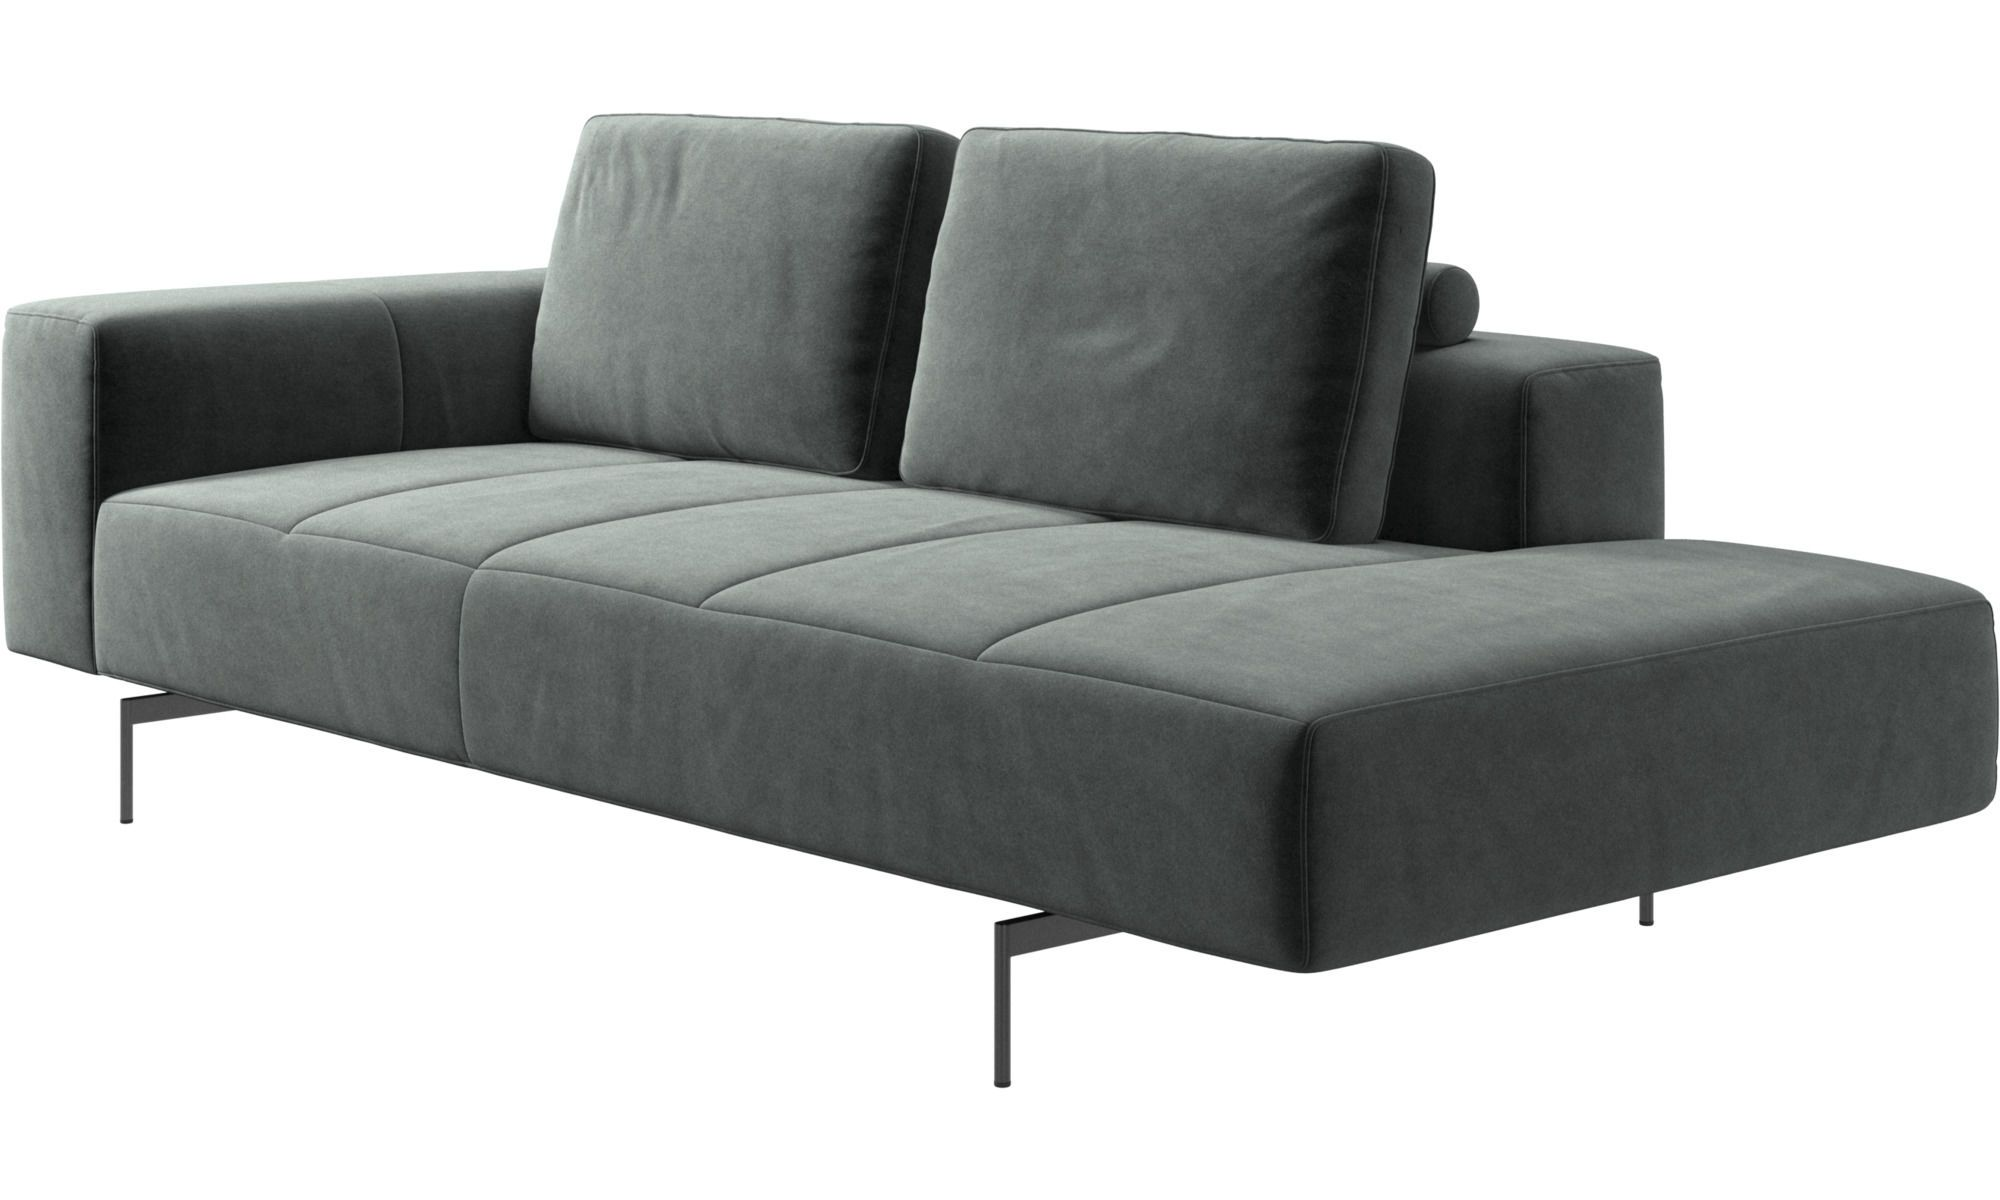 Amsterdam Corner Sofa With Lounging Unit With Images Modular Sofa L Shaped Sofa Designs Sofas For Small Spaces